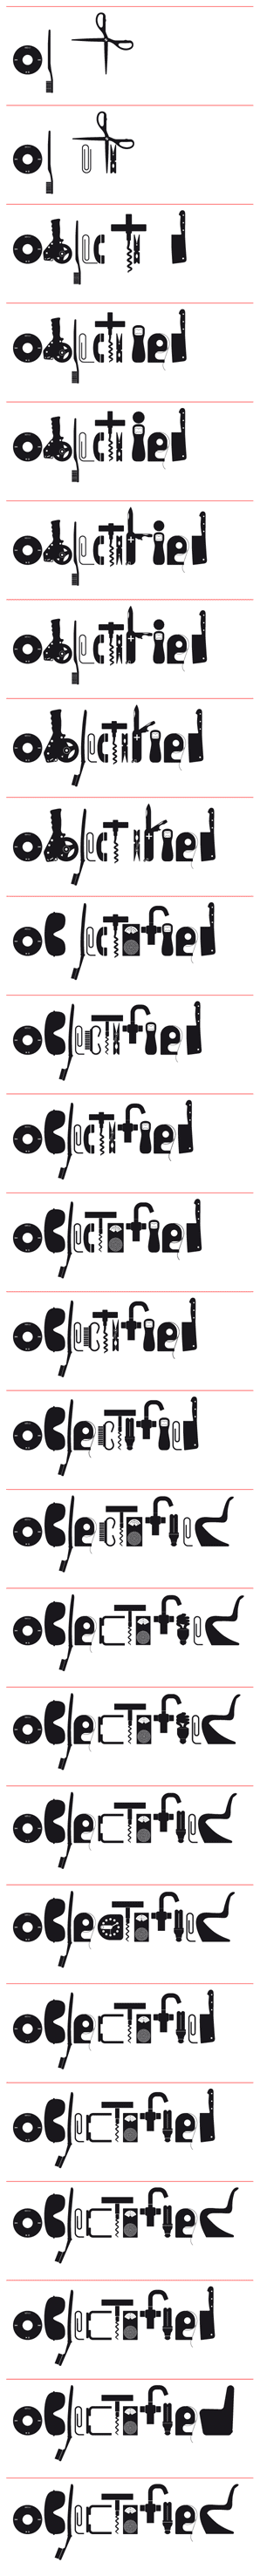 objectified-revisions-of-the-logo